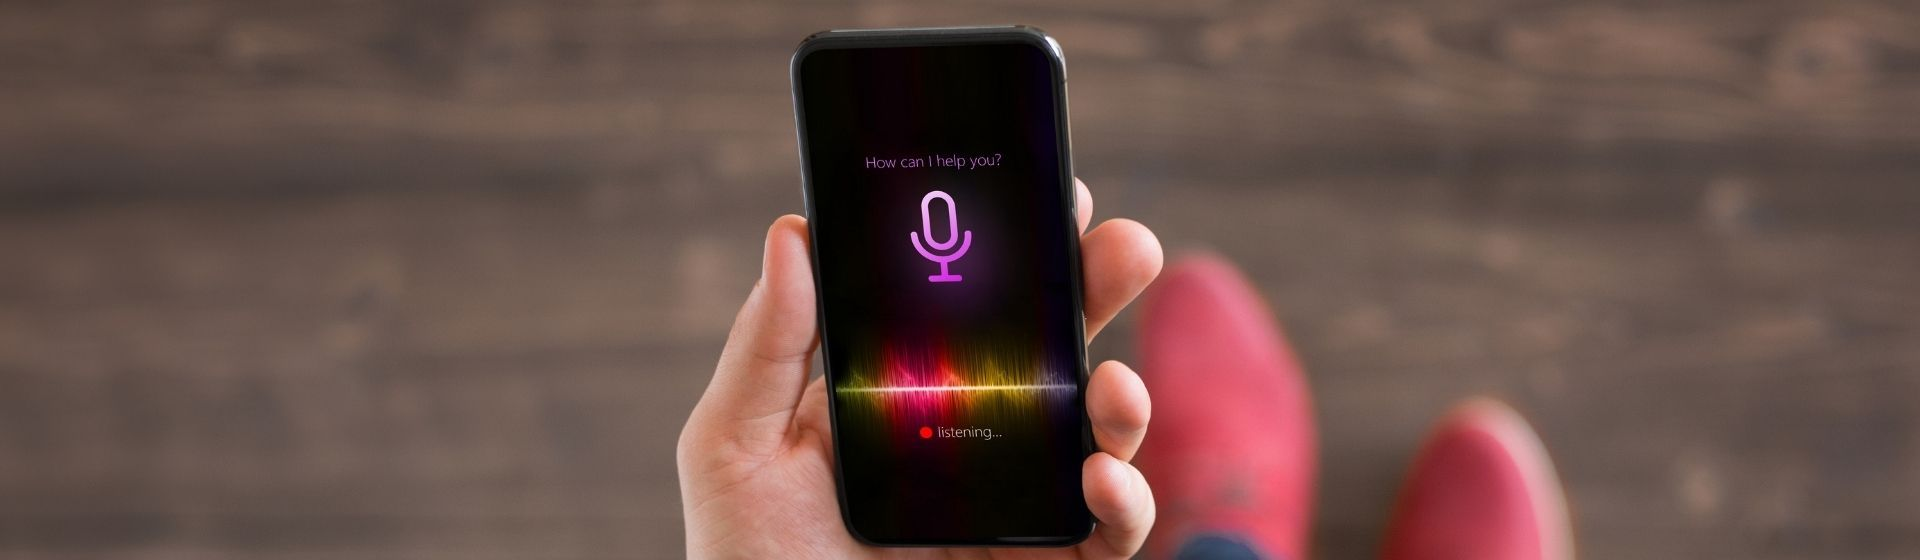 E aí, Siri? Como falar com a Siri, assistente virtual da Apple